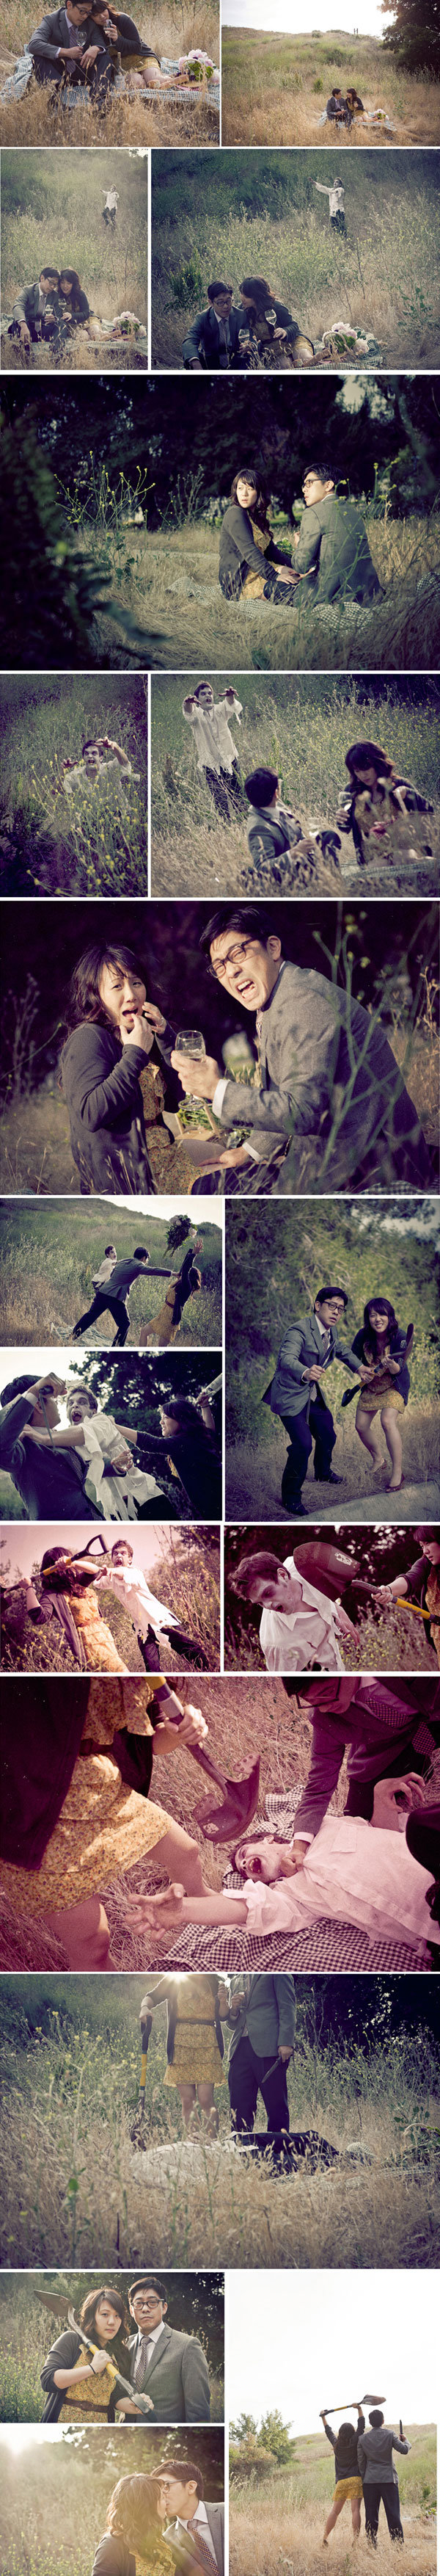 zombie engagement shoot